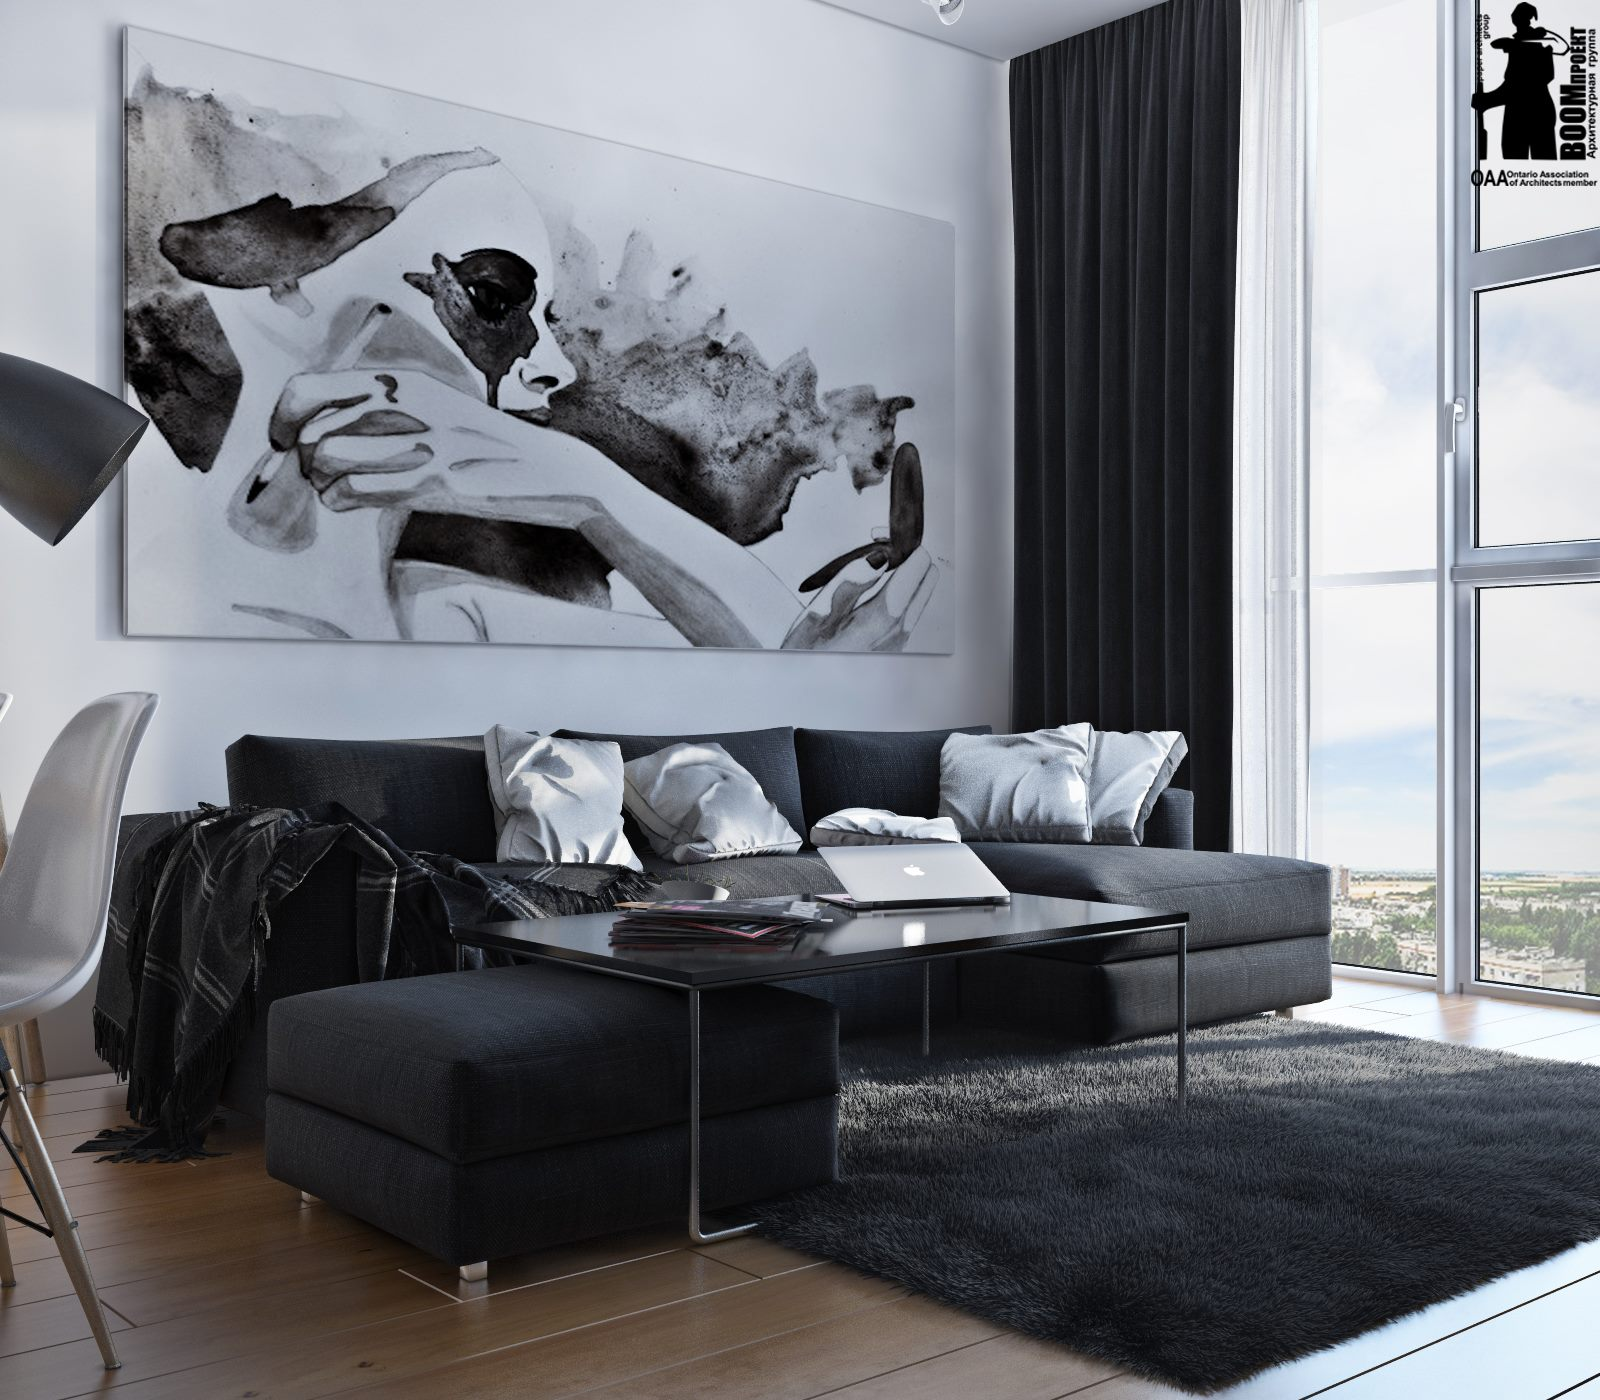 The living space has a large sectional sofa, an oversized artwork and floor to ceiling windows